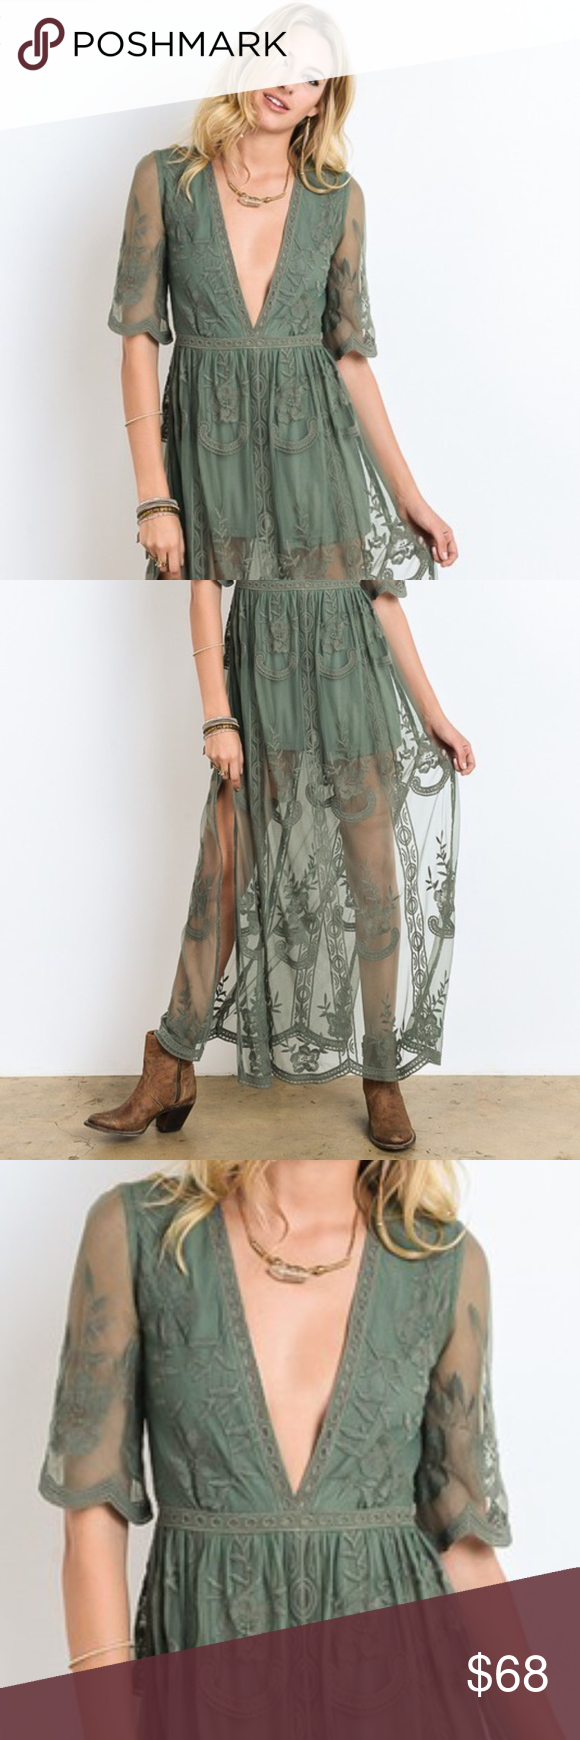 1dada8fcec3 PREORDER  SAGE LACE ROMPER SHEER EMBROIDERED LACE LINED MAXI DRESS -  EMBROIDERED FLORAL MESH LACE